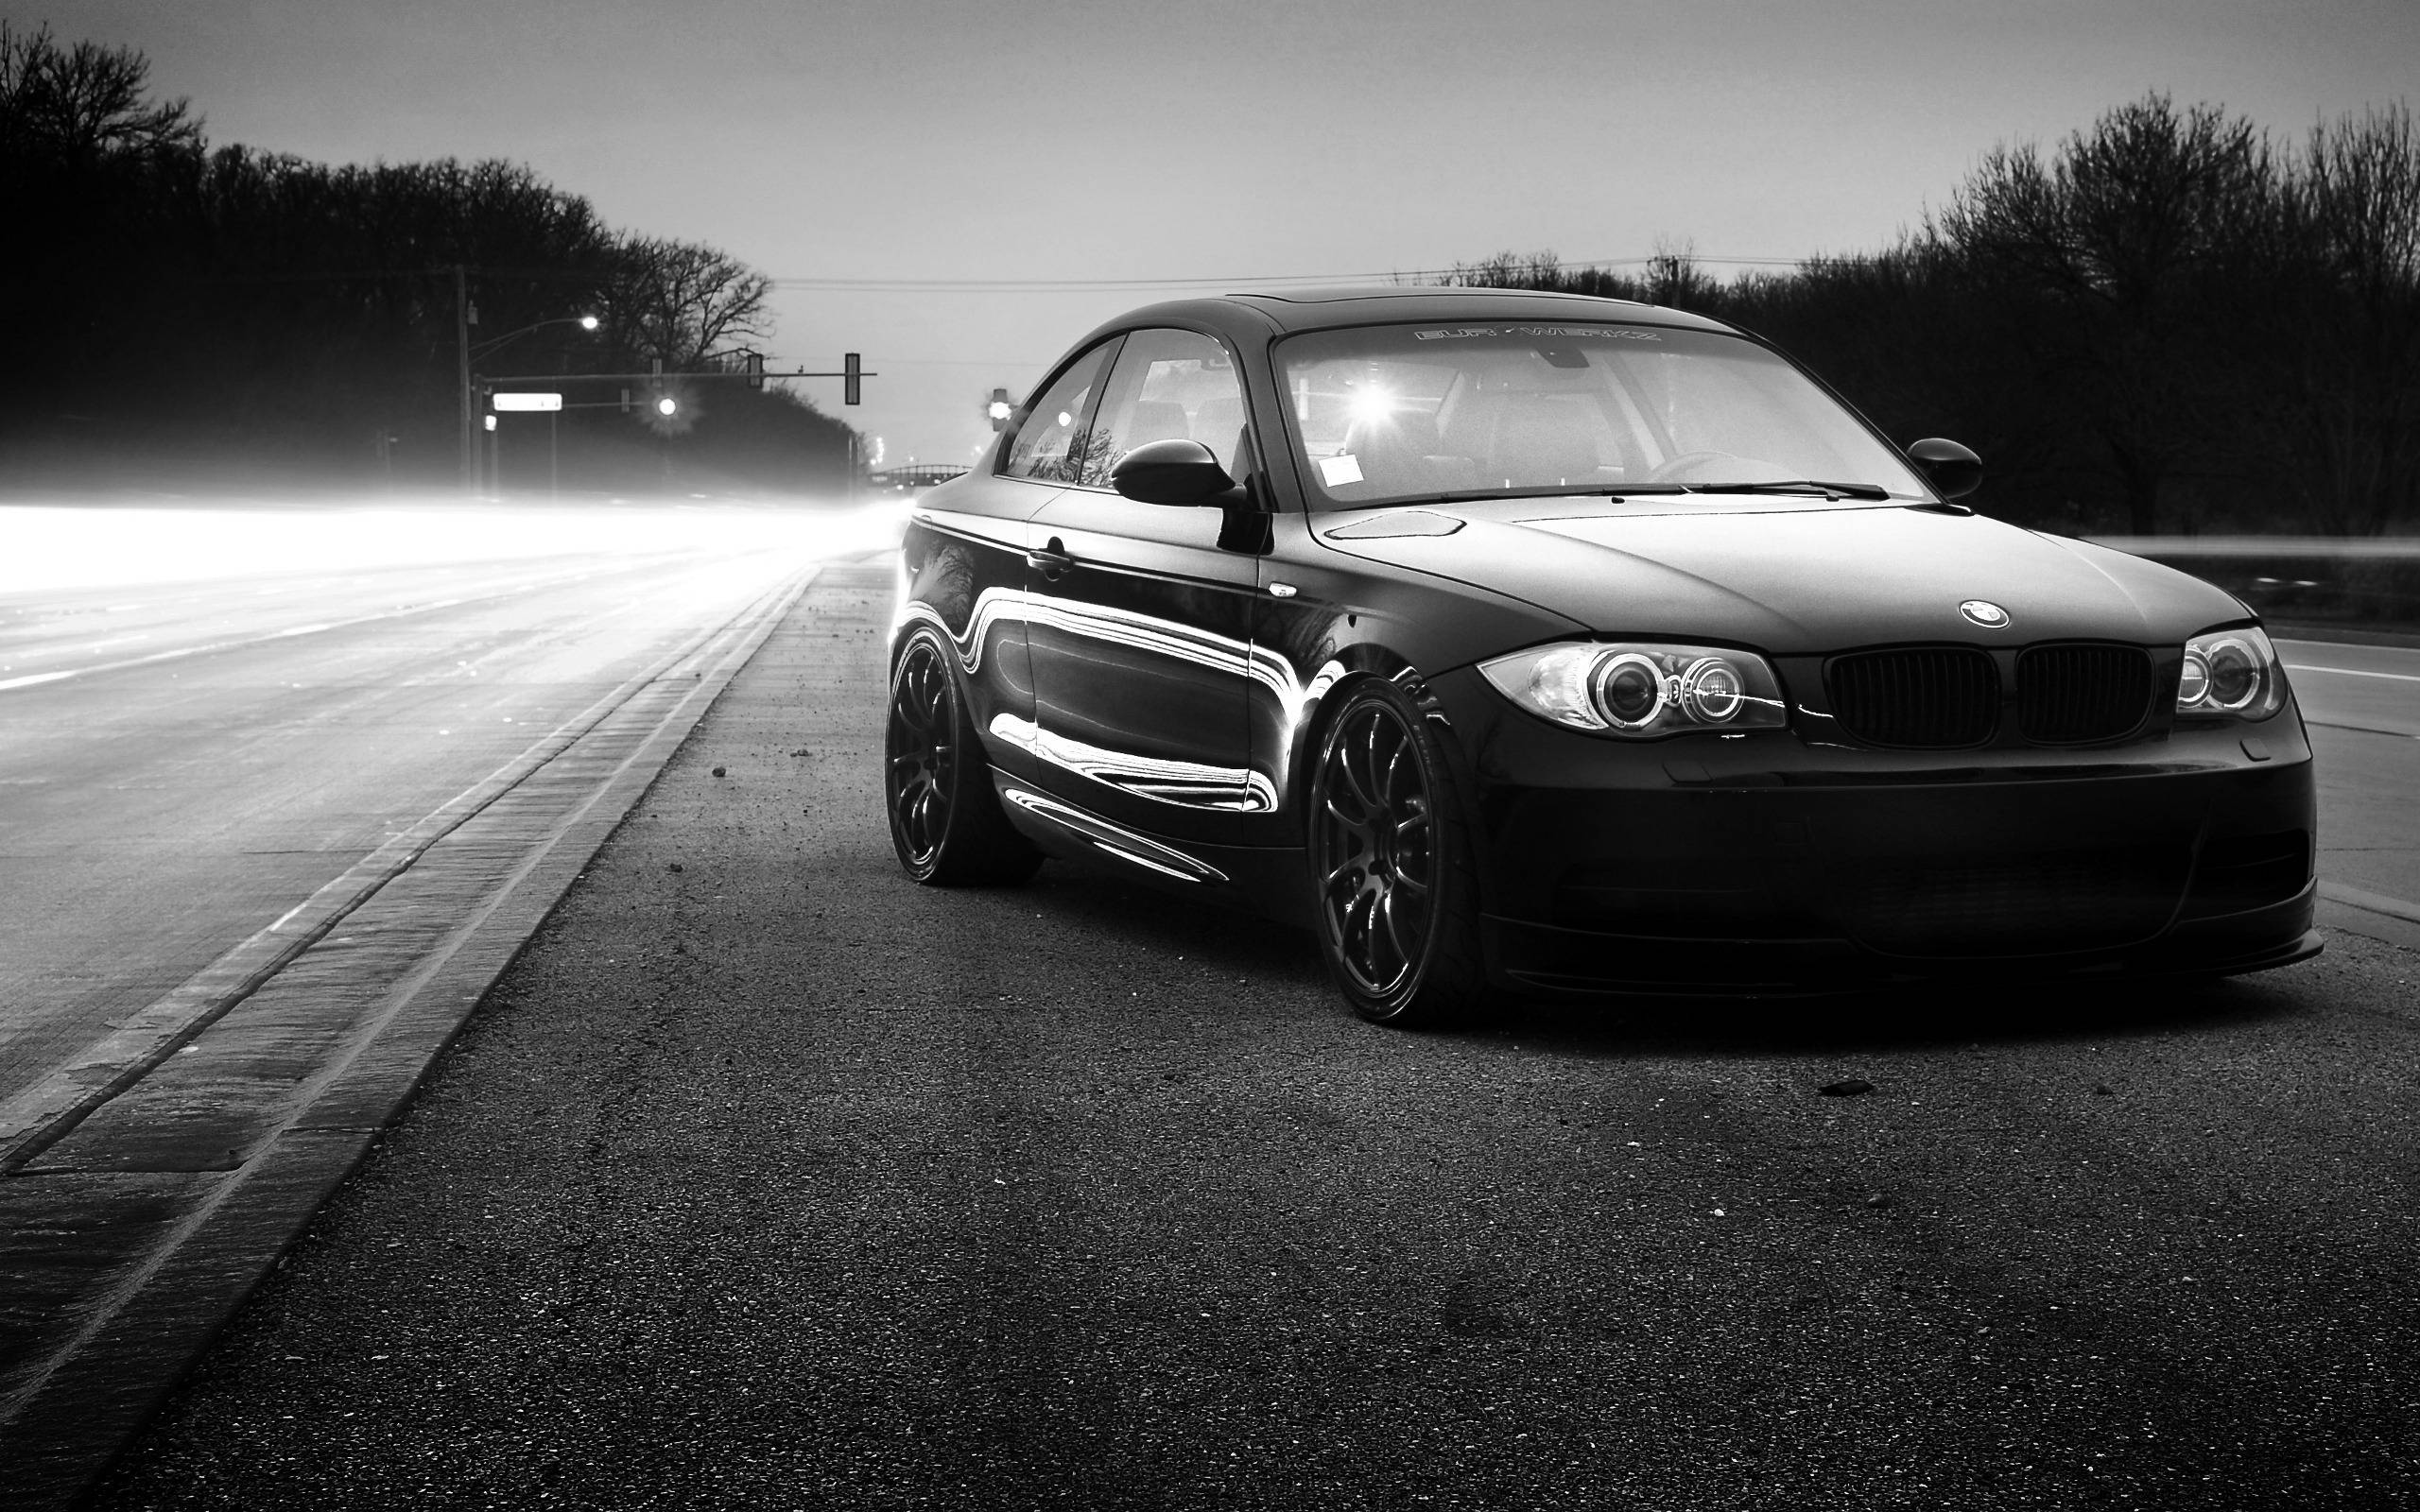 BMW 135 Wallpapers - HD Wallpapers Inn